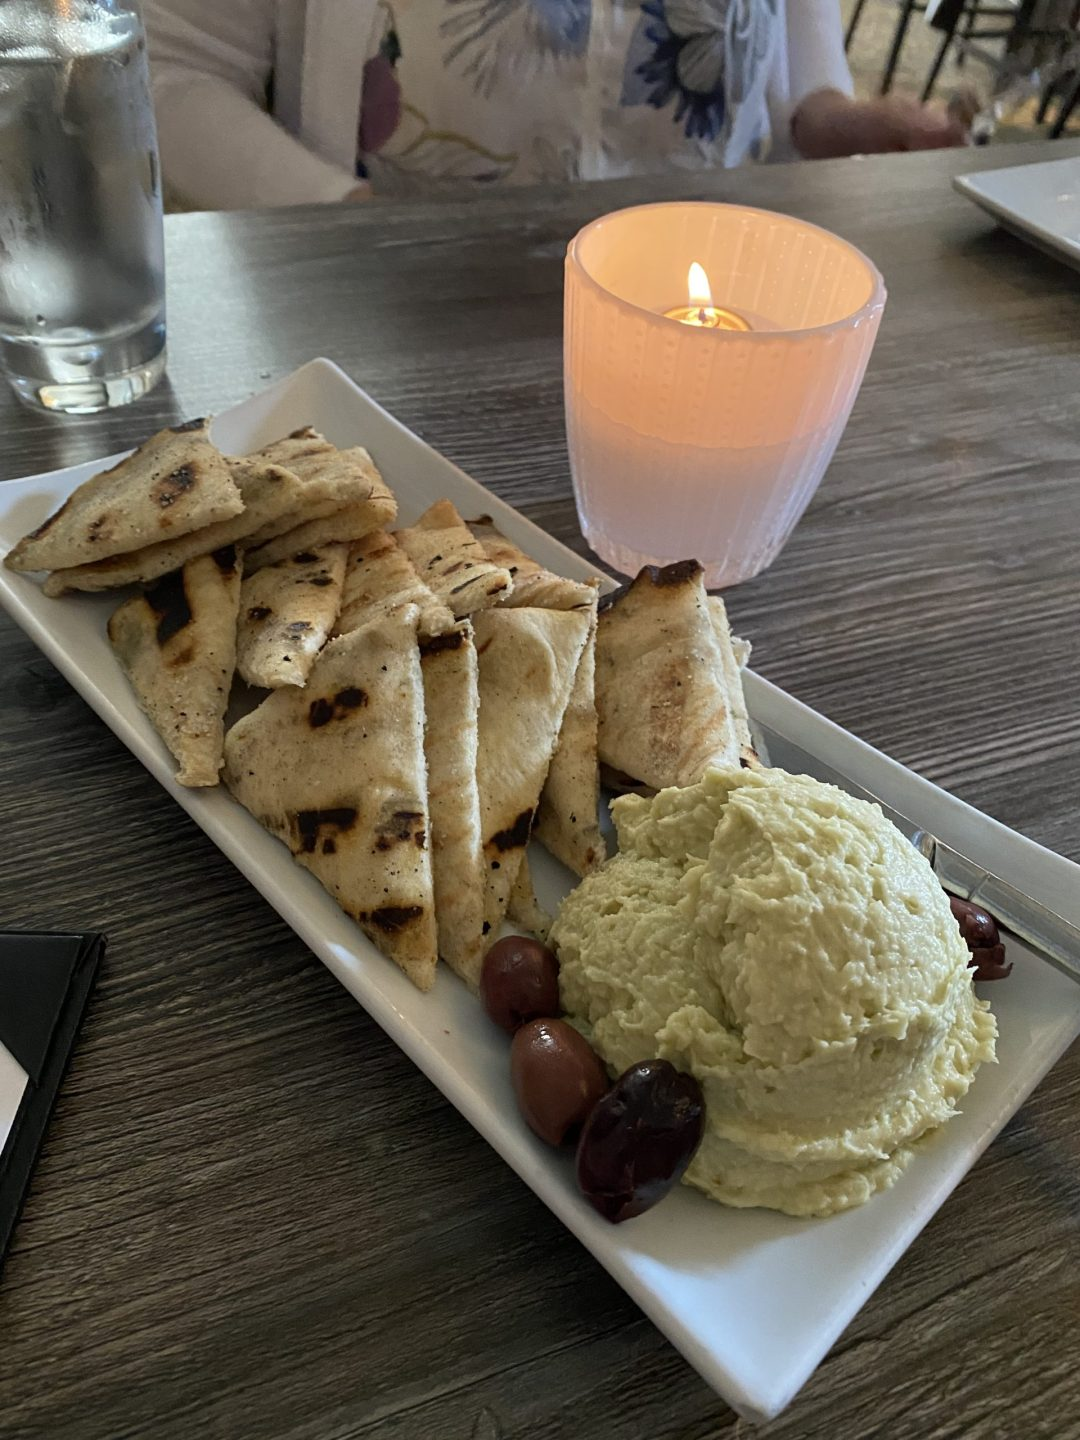 Hummus with pita and olives and a candle in the background